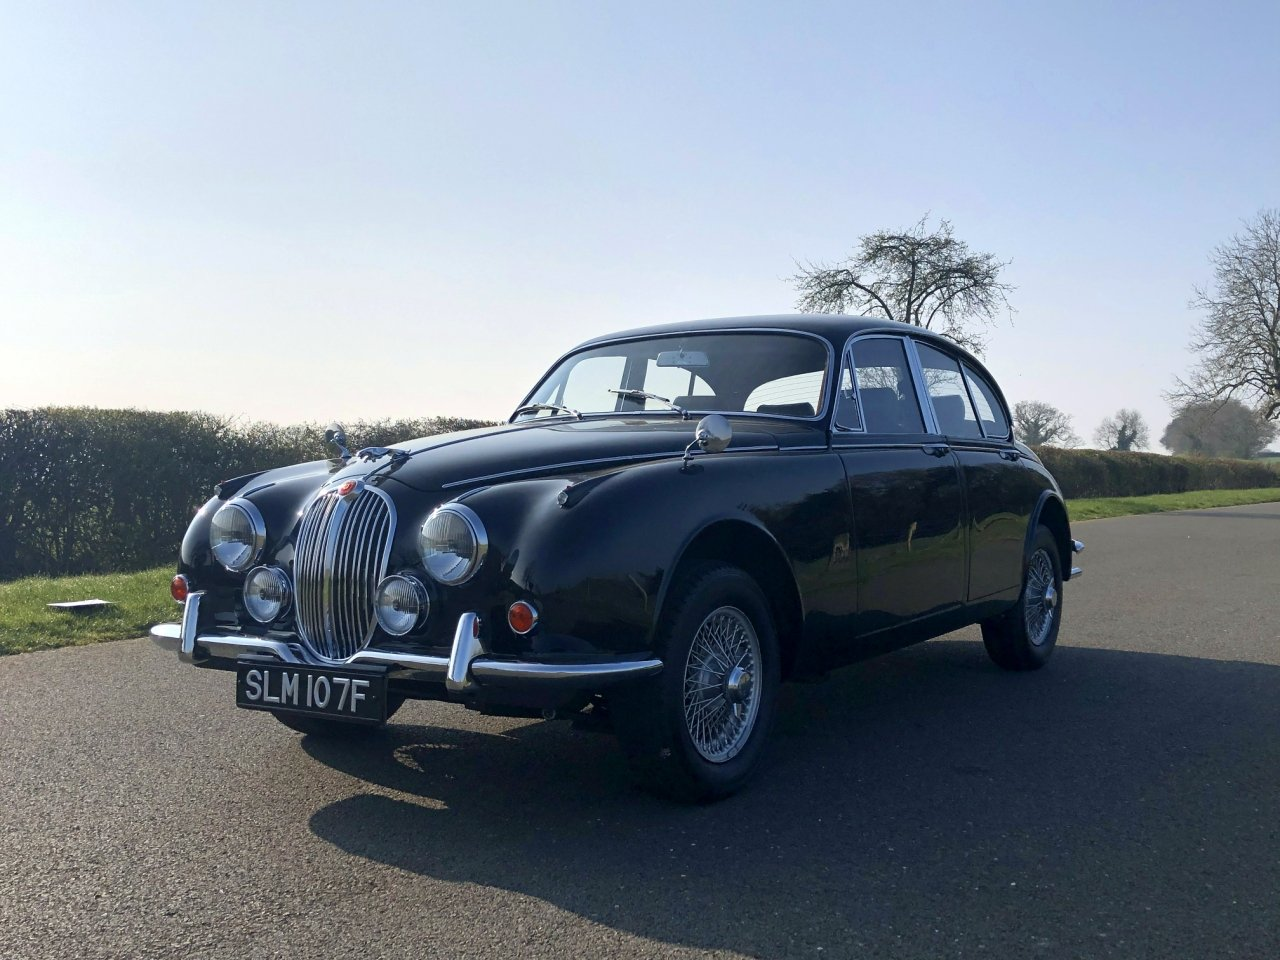 1967 Jaguar 340 MK II Automatic SOLD (picture 1 of 6)